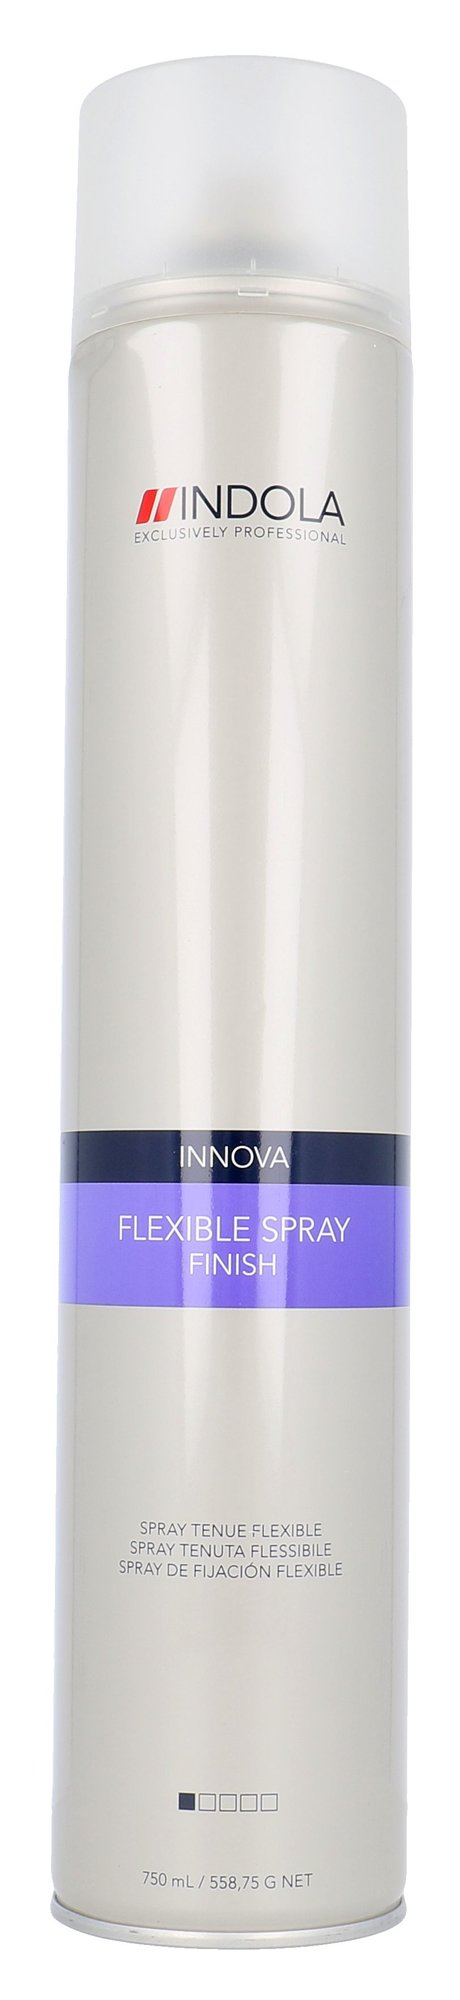 Indola Innova Finish Cosmetic 750ml